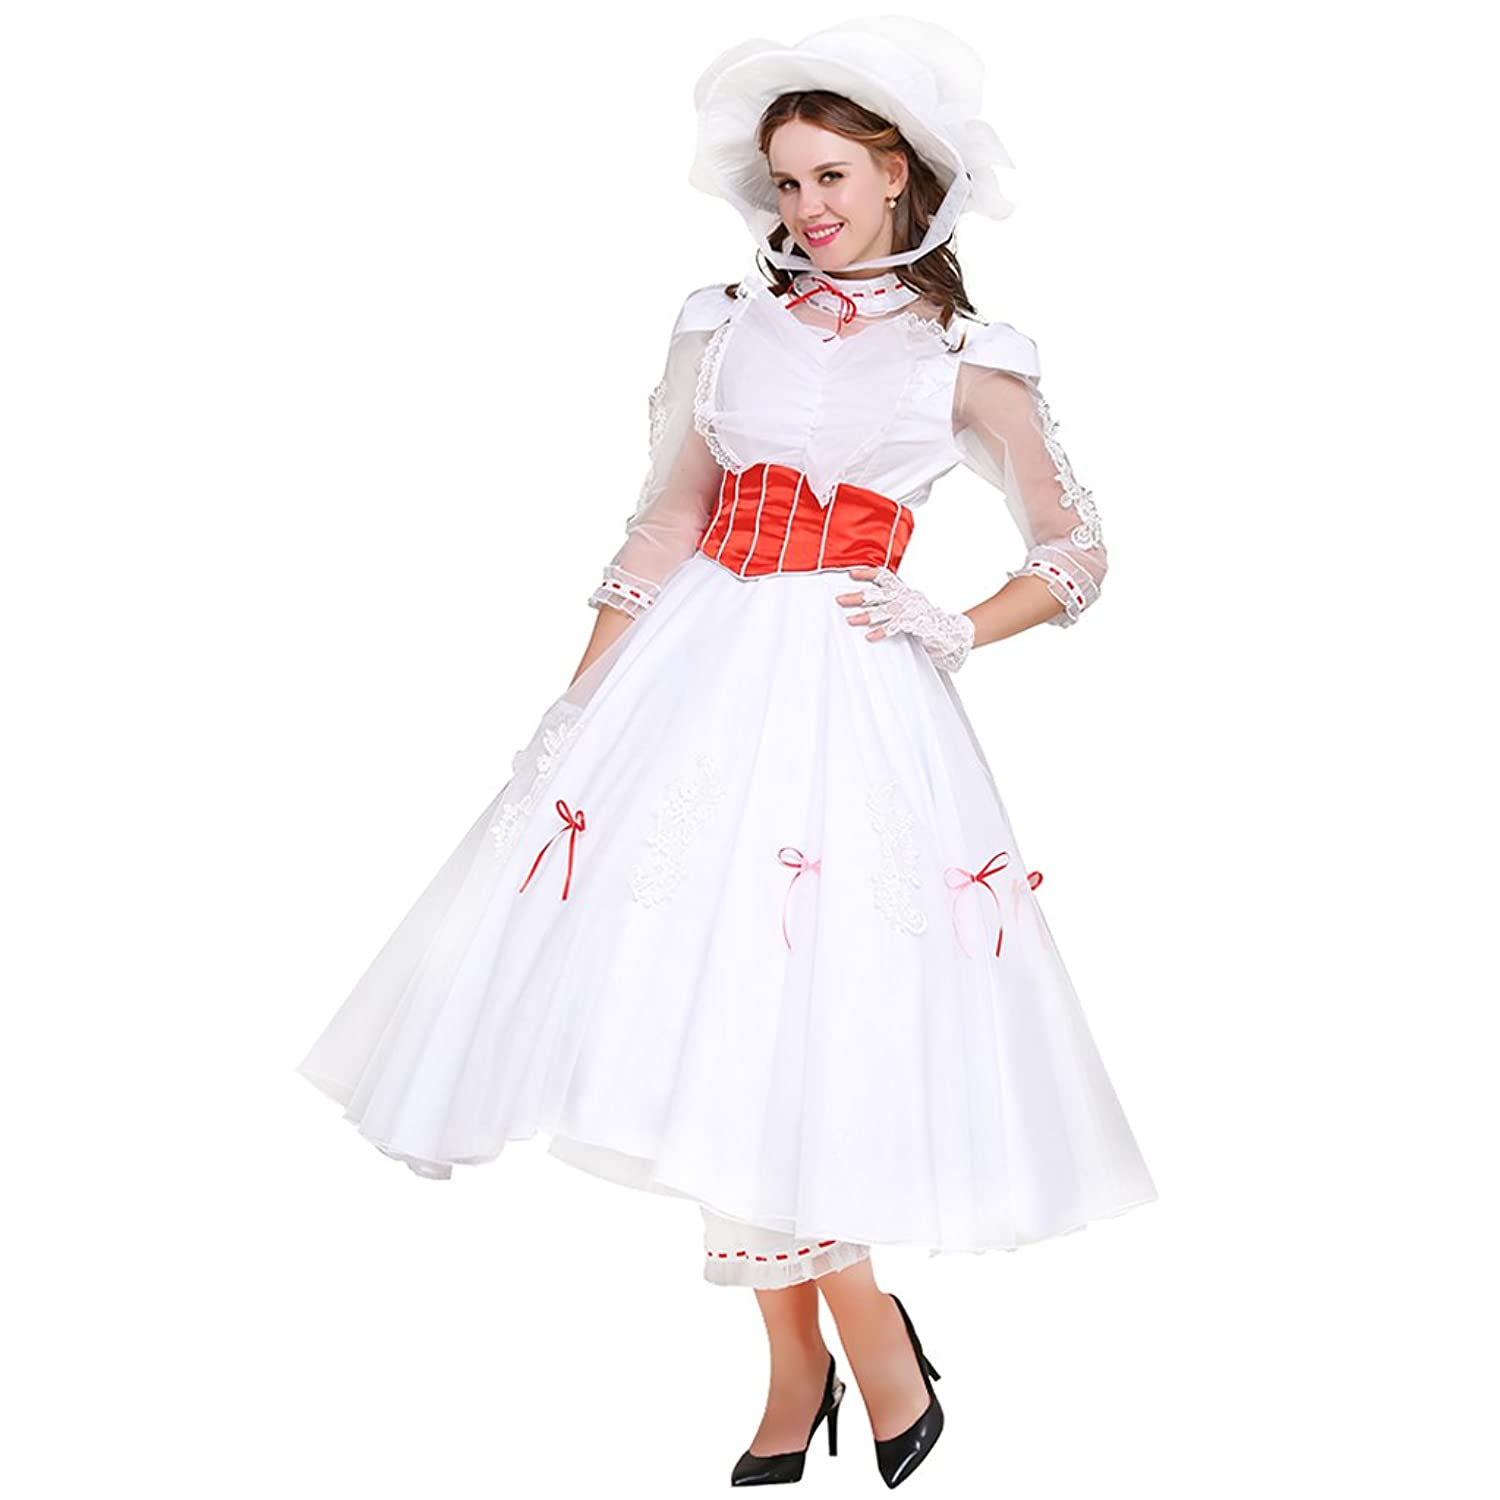 Edwardian Costumes – Cheap Halloween Costumes Dress for Mary Poppins Princess Cosplay $133.00 AT vintagedancer.com